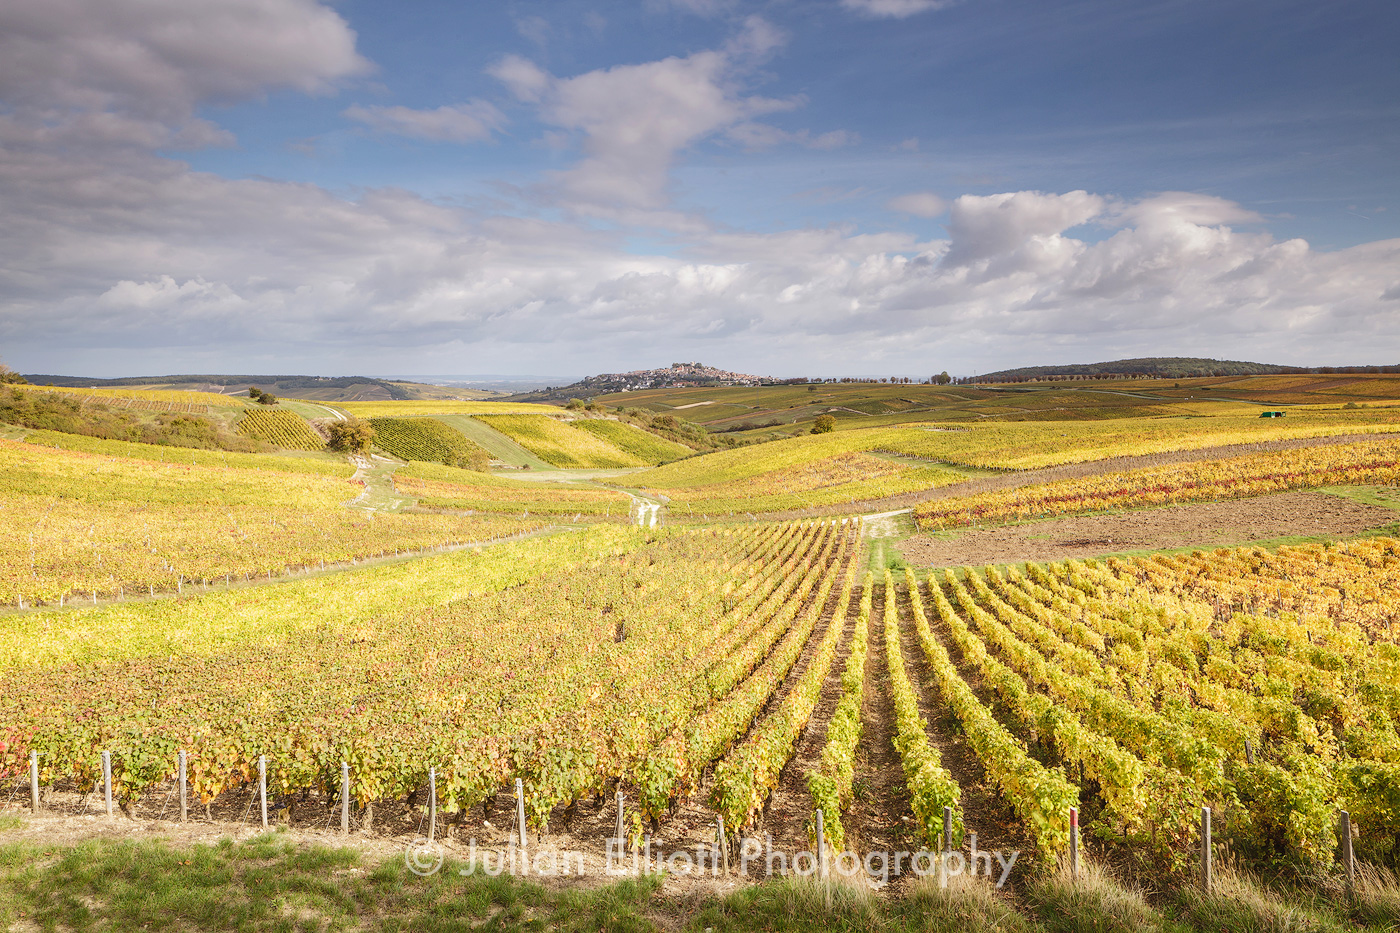 Autumn color in the vineyards of Sancerre, France.